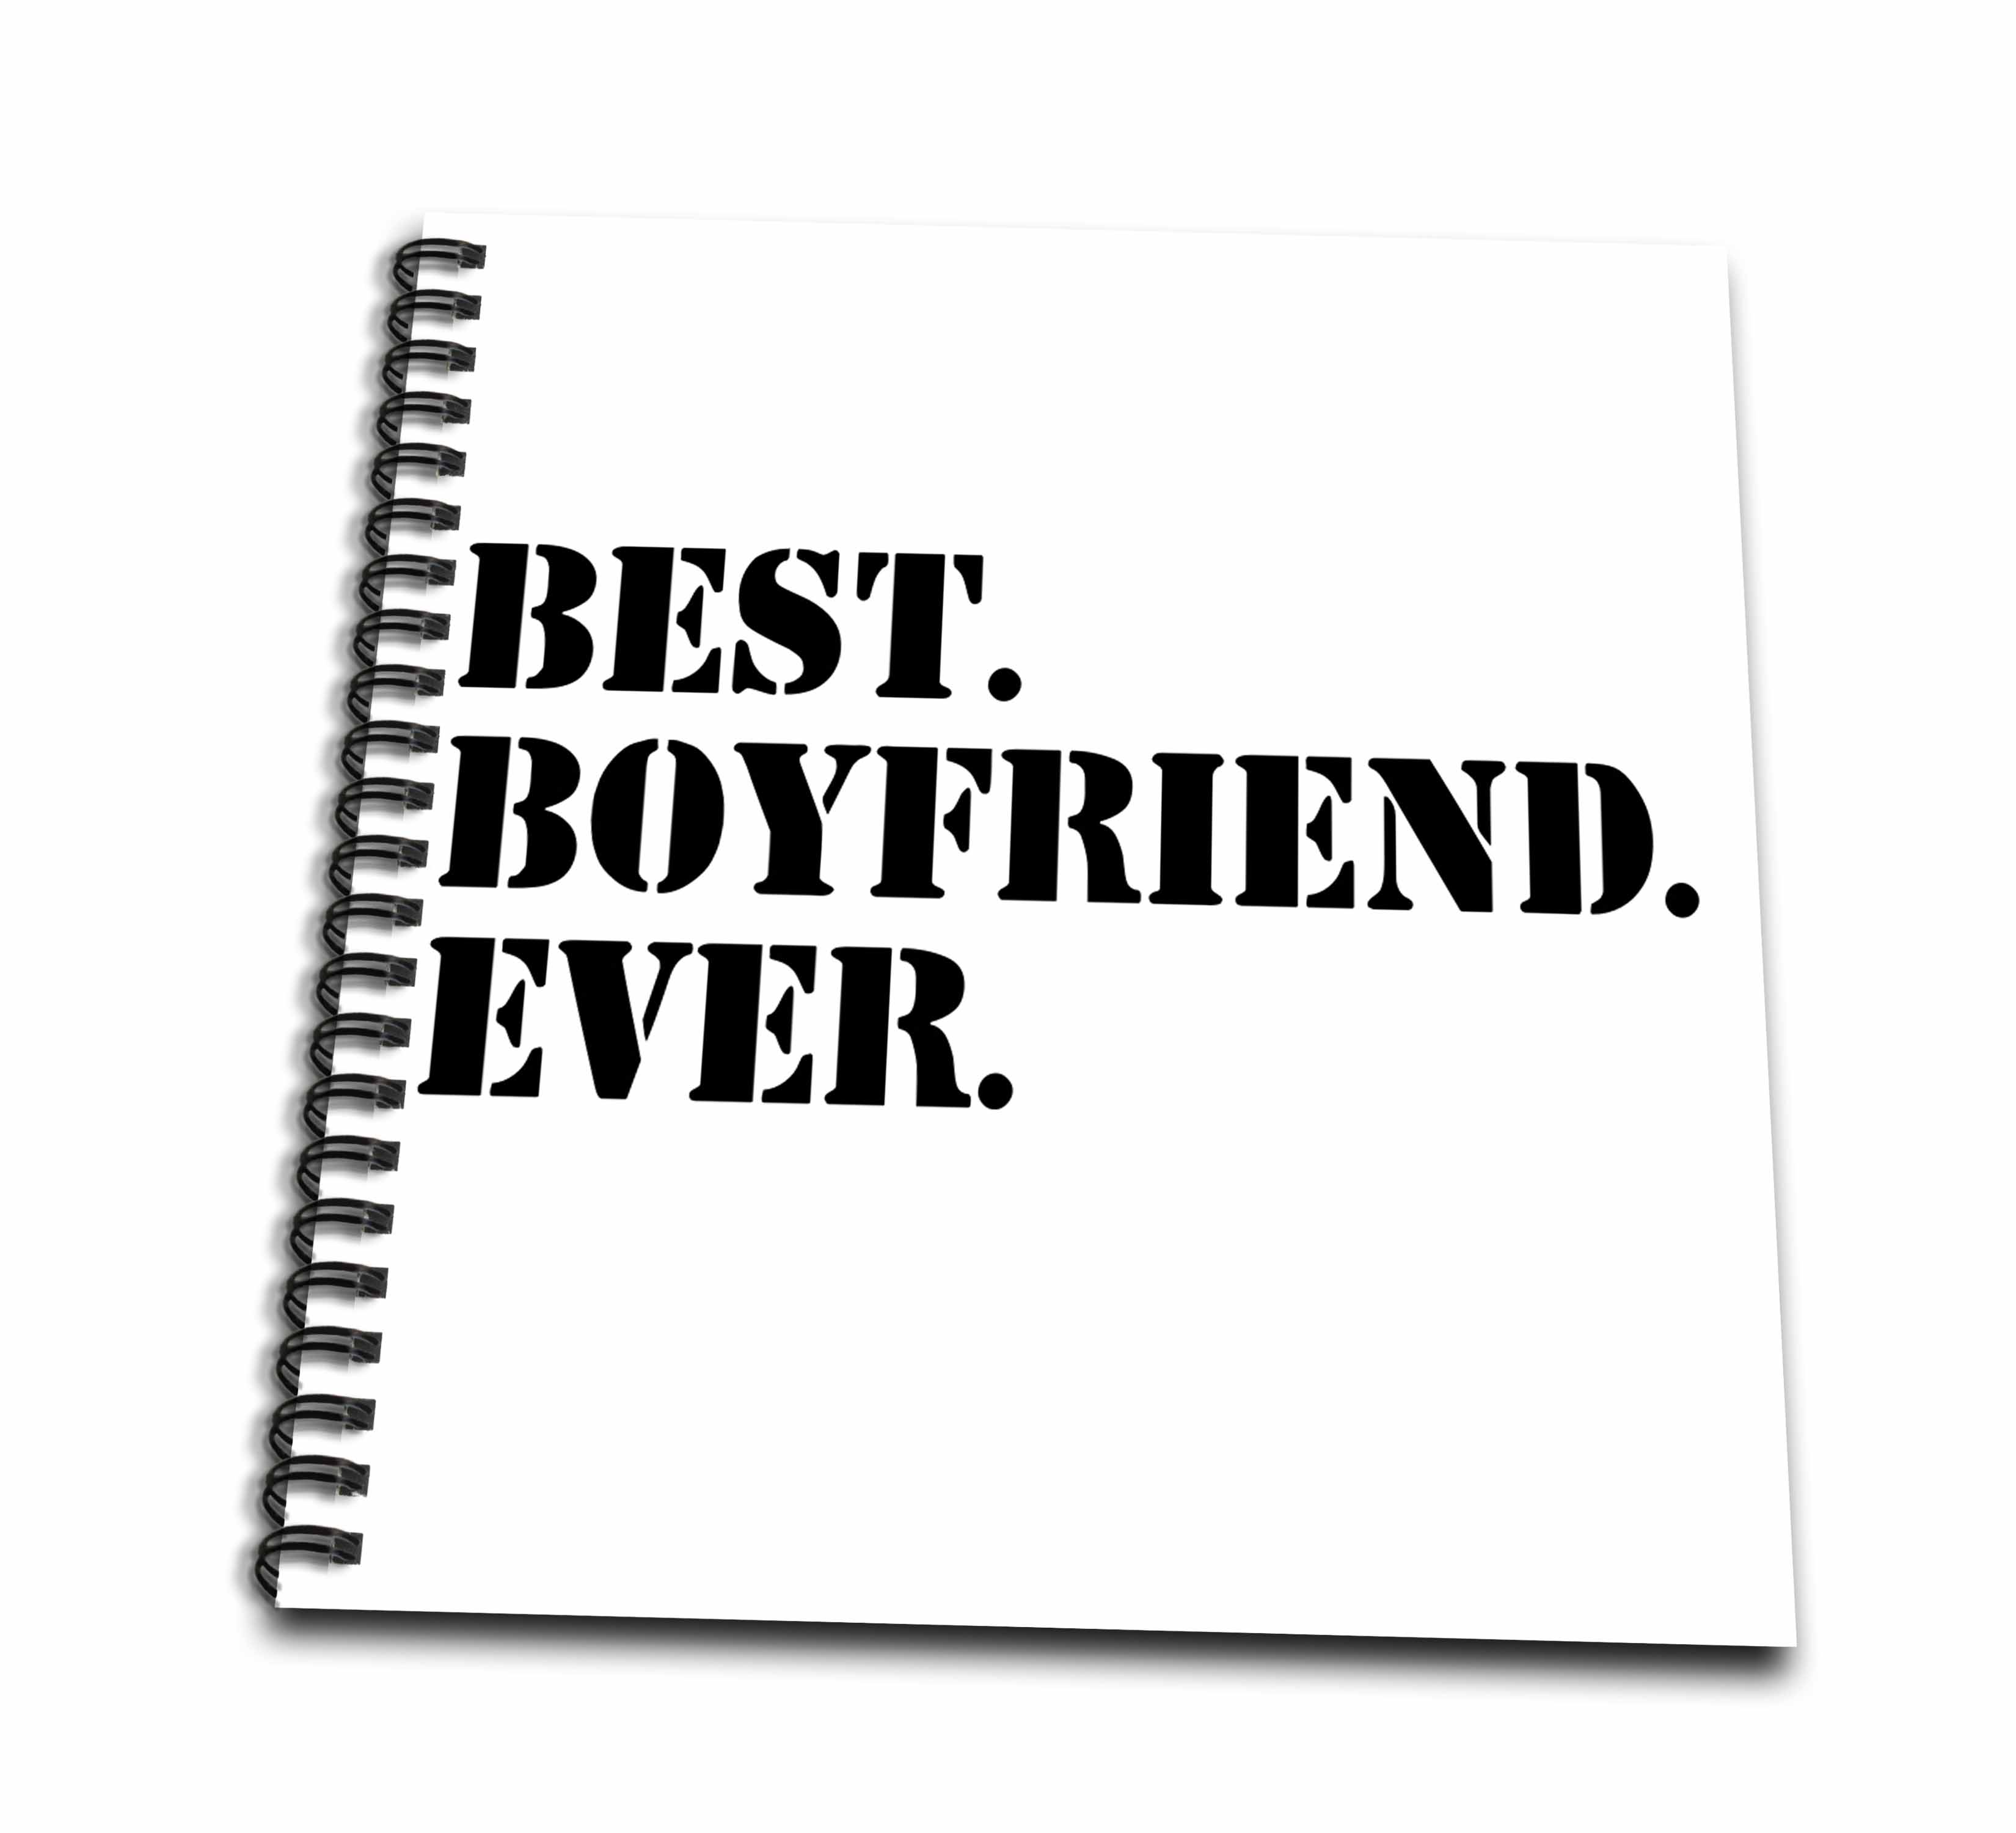 3drose Best Boyfriend Ever Fun Romantic Love And Dating Gifts For